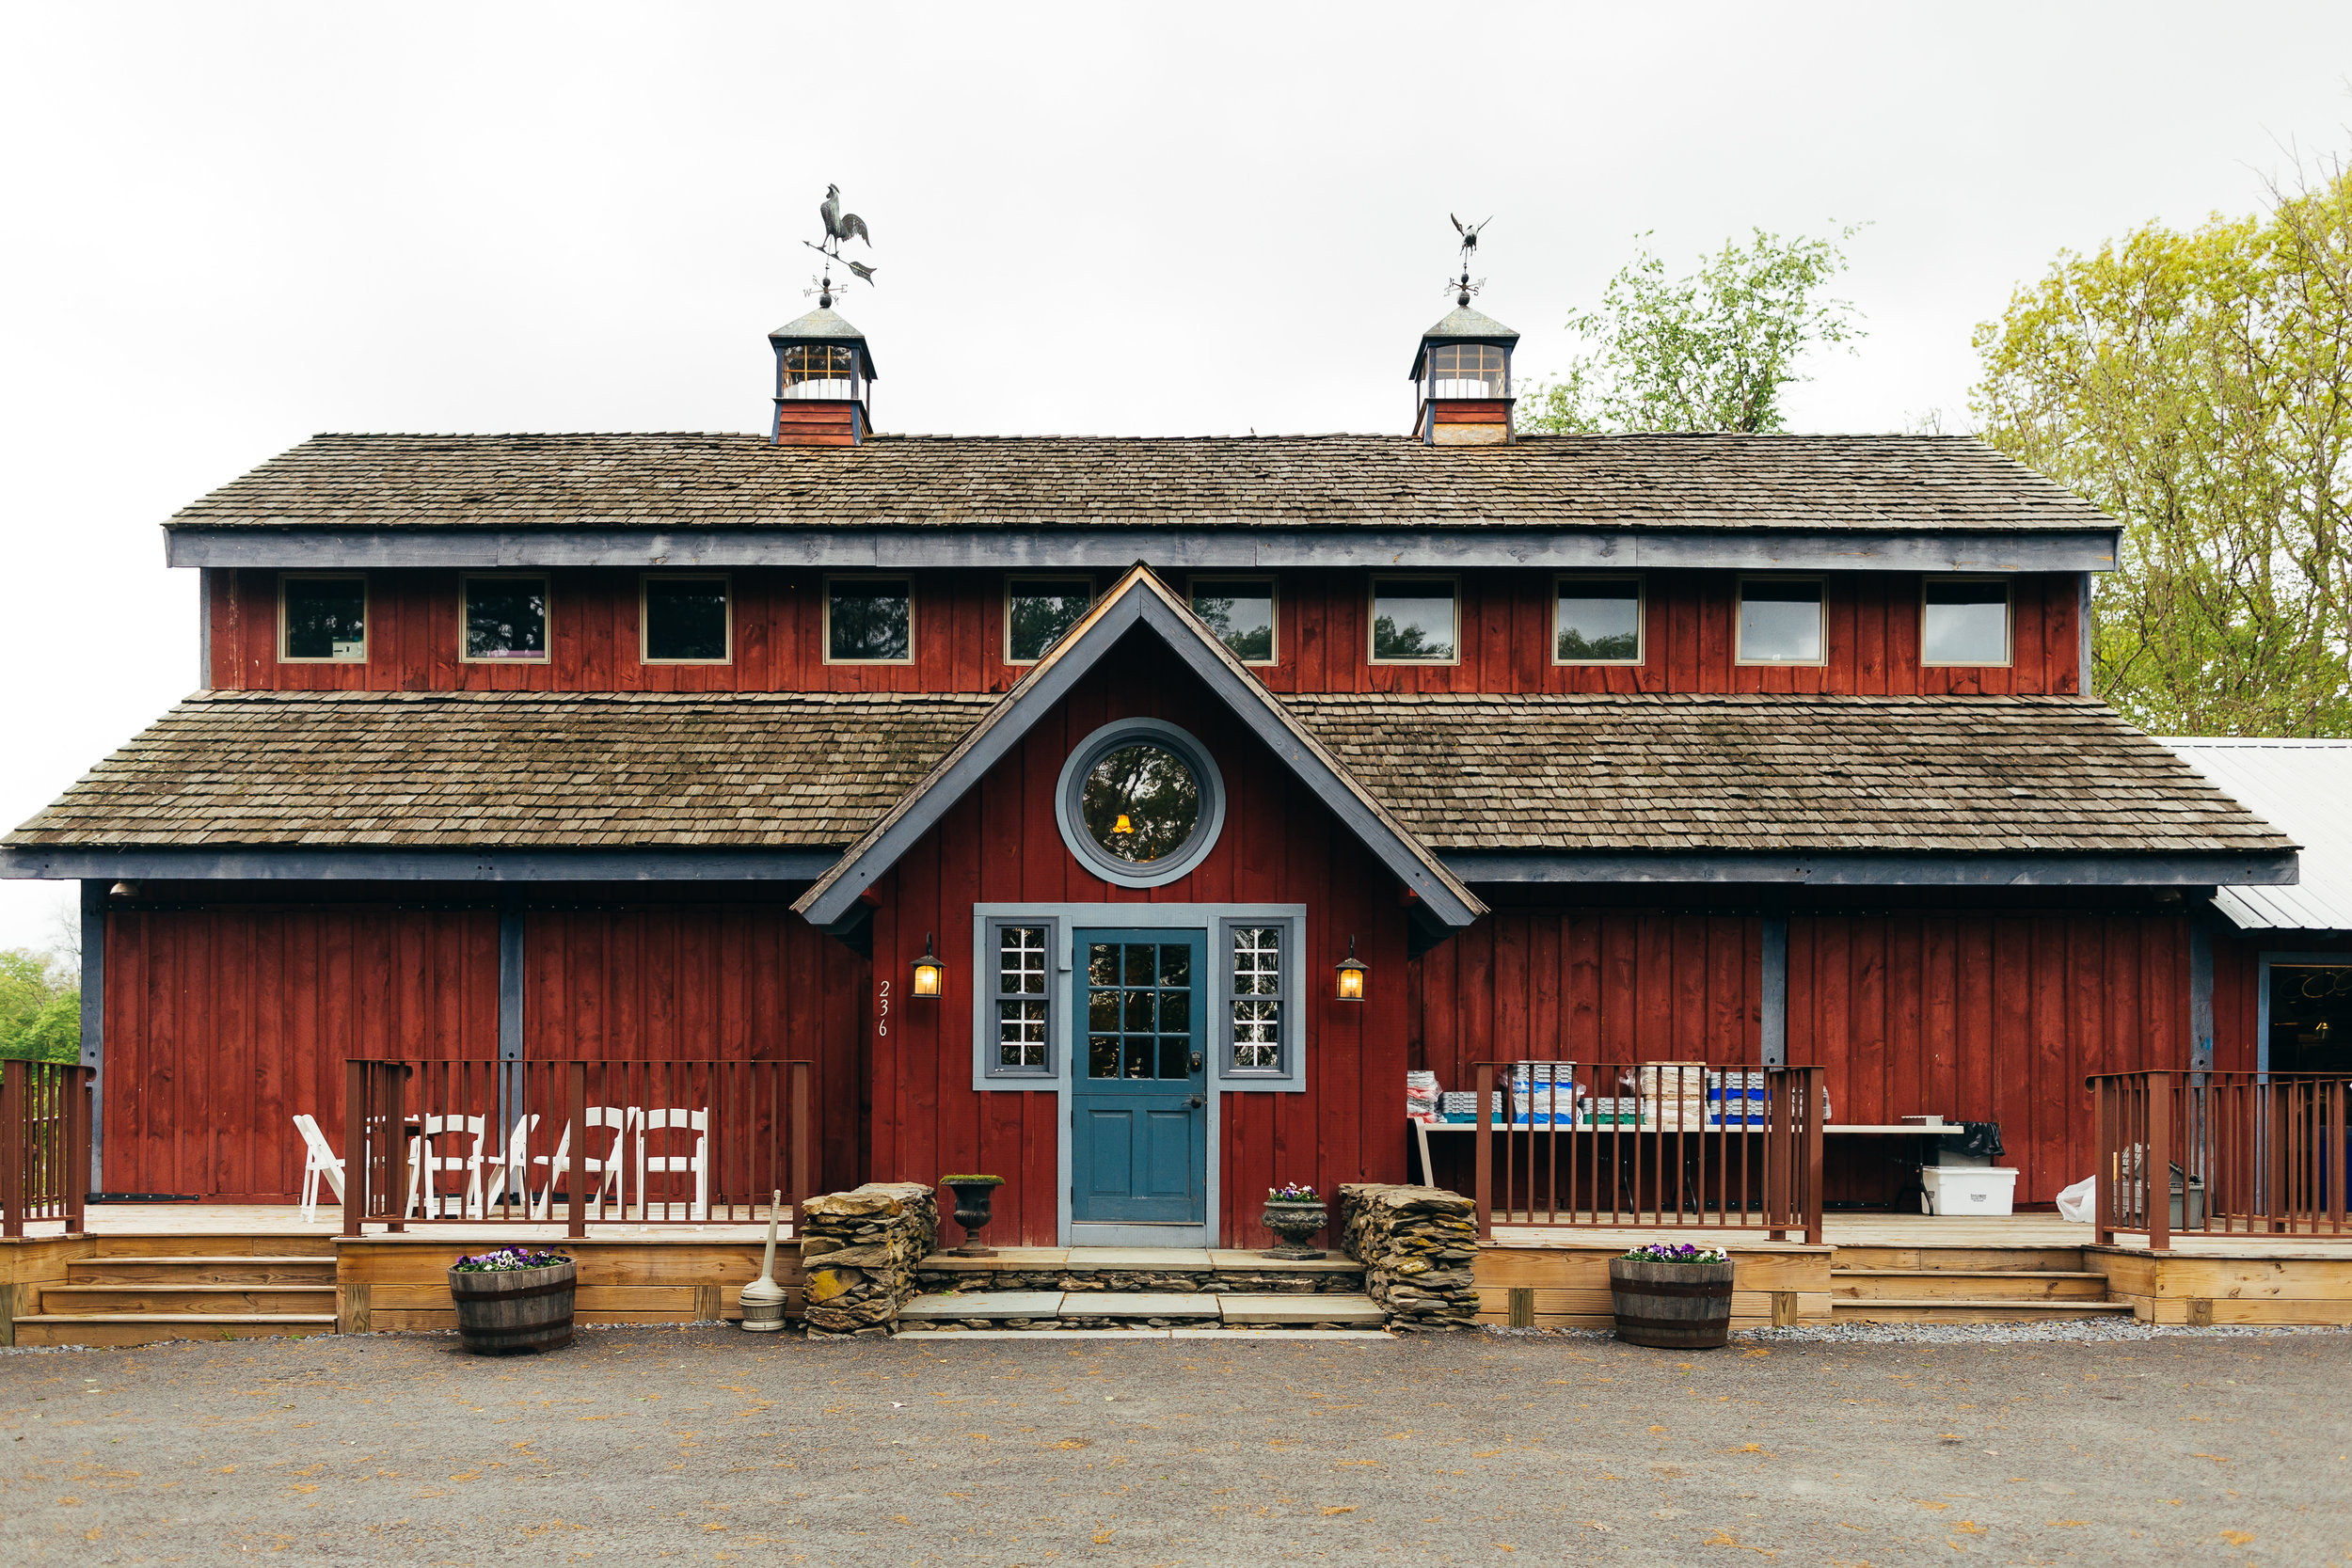 Buttermilk Falls Inn has some awesome scenery, but the highlight of the property is definitely this restored barn that they have, which they were able to use to host the reception after the ceremony. If you are looking for a rustic barn for your same sex wedding in the Hudson Valley, it would be hard to go wrong with Buttermilk Falls Inn.